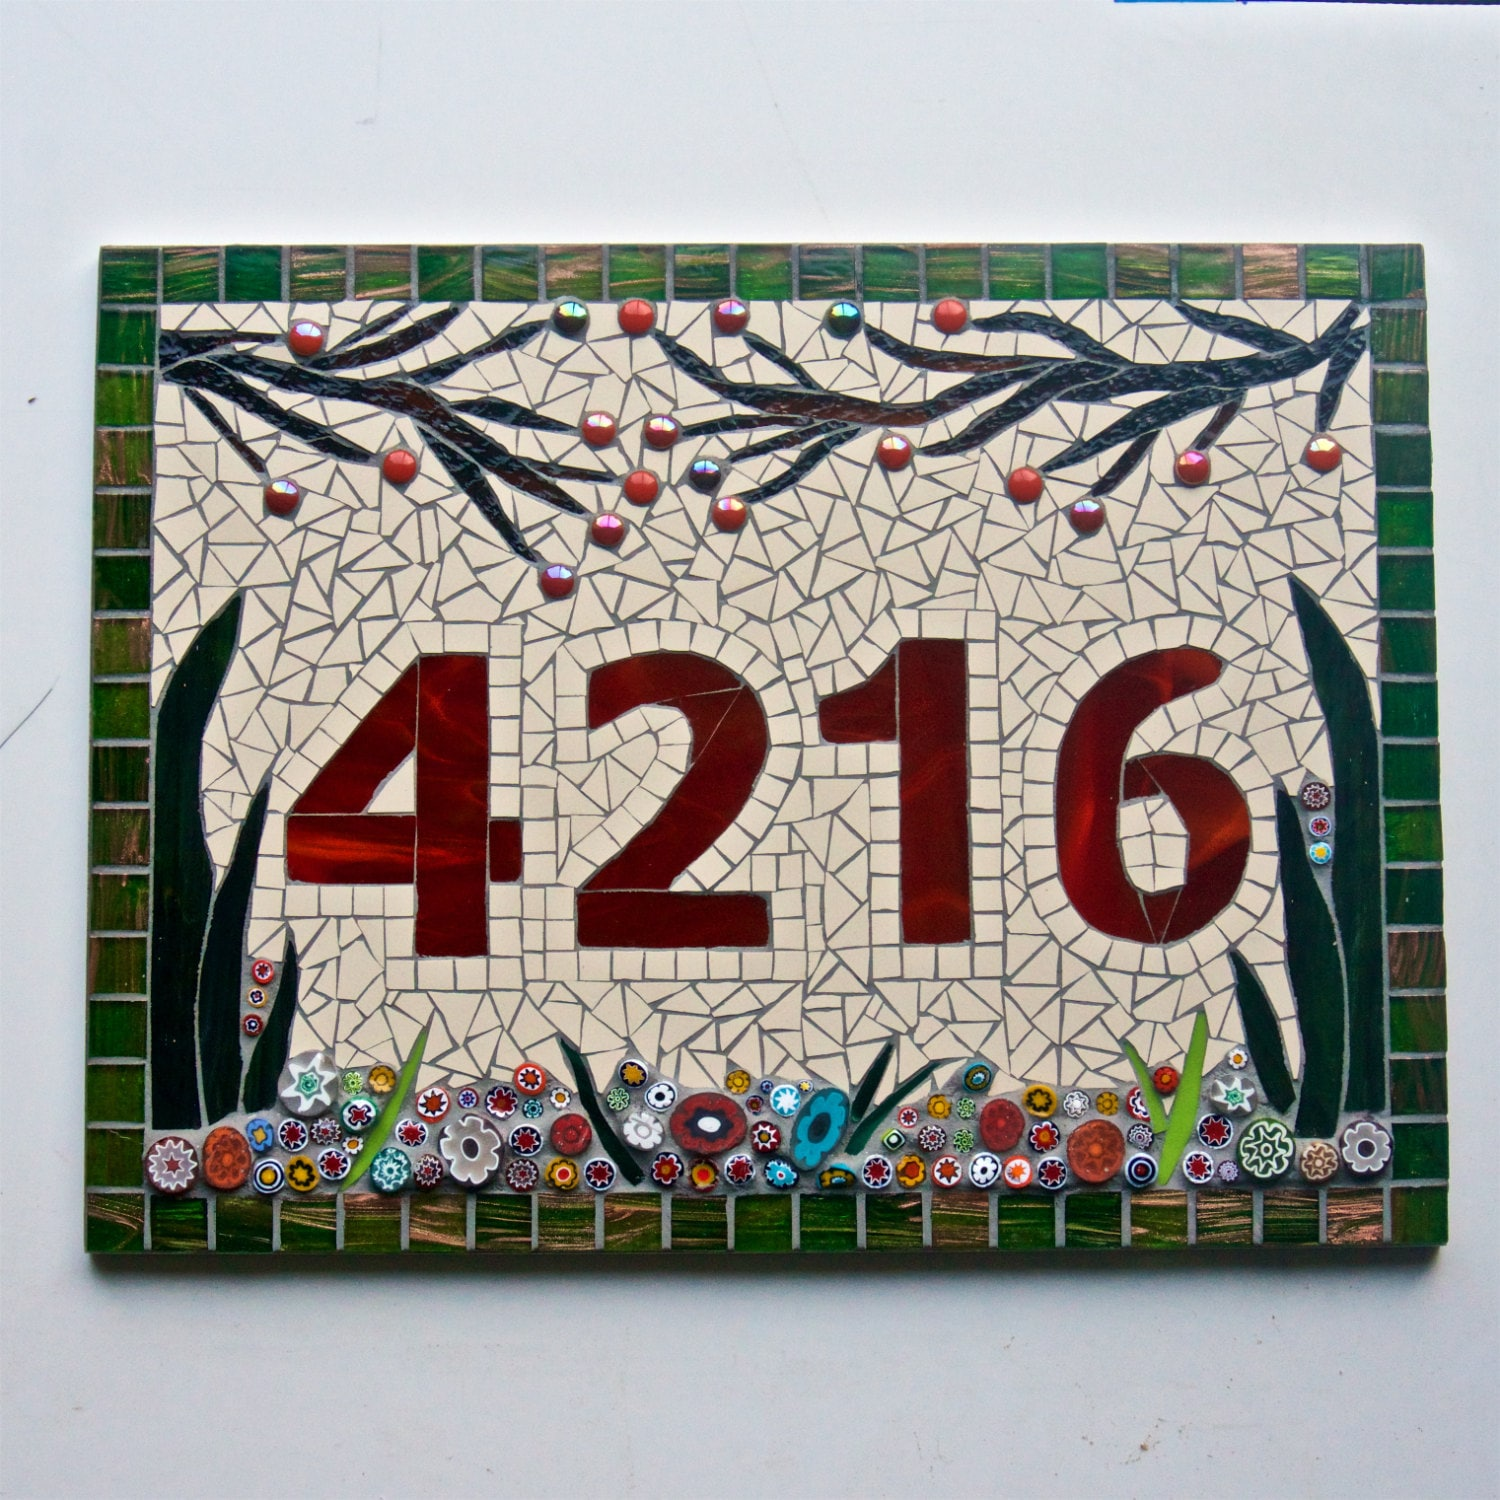 Large Mosaic House Number Sign Plaque Address Number Plate. Midwest Dental Stevens Point Wi. Therapeutic Drug Class Baby Formula Discounts. Can U Mix Breastmilk And Formula. Mobile Locksmith Portland 1800 Loose Diamonds. Chinese Restaurant Equipment Supplier. What Is Vitreous Gel In The Eye. Fiu College Application Tree Service Estimate. Unsecured Low Interest Personal Loans